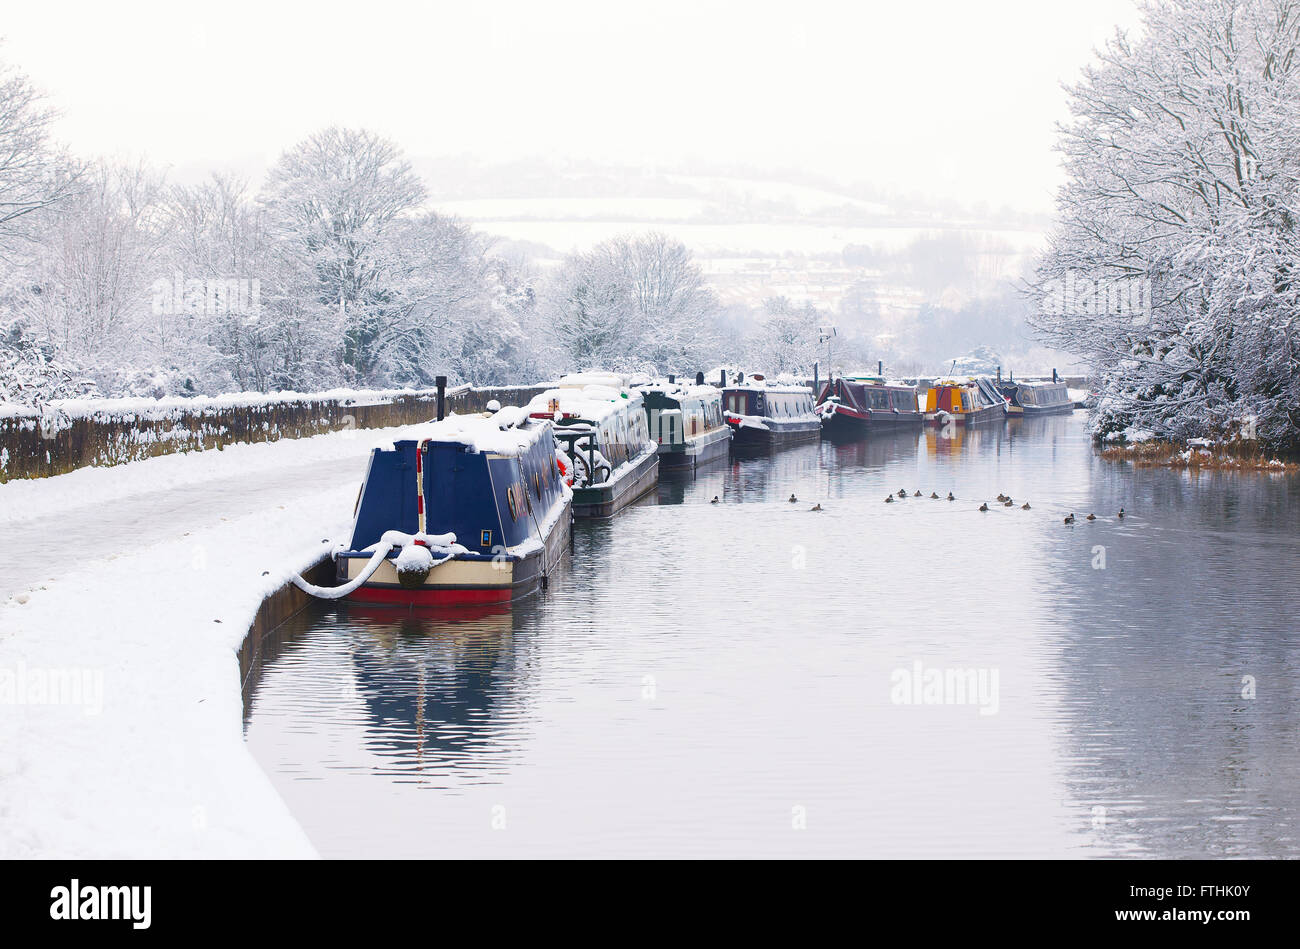 Moored boats on Kennet and Avon Canal in Winter - Stock Image